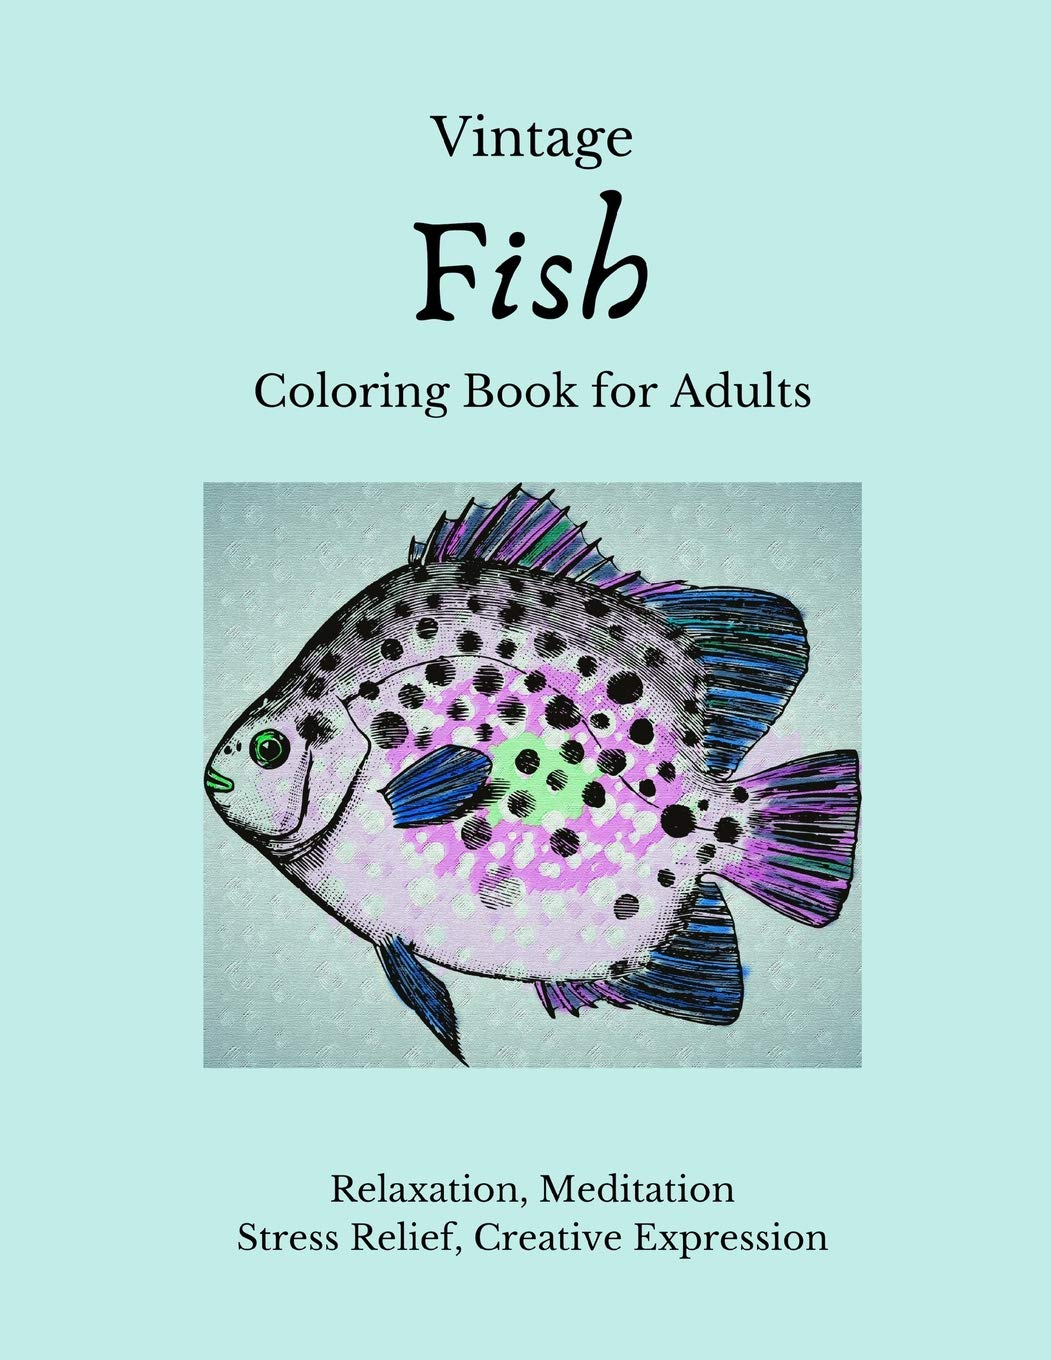 - Amazon.com: Vintage Fish Coloring Book For Adults: Color And Shade